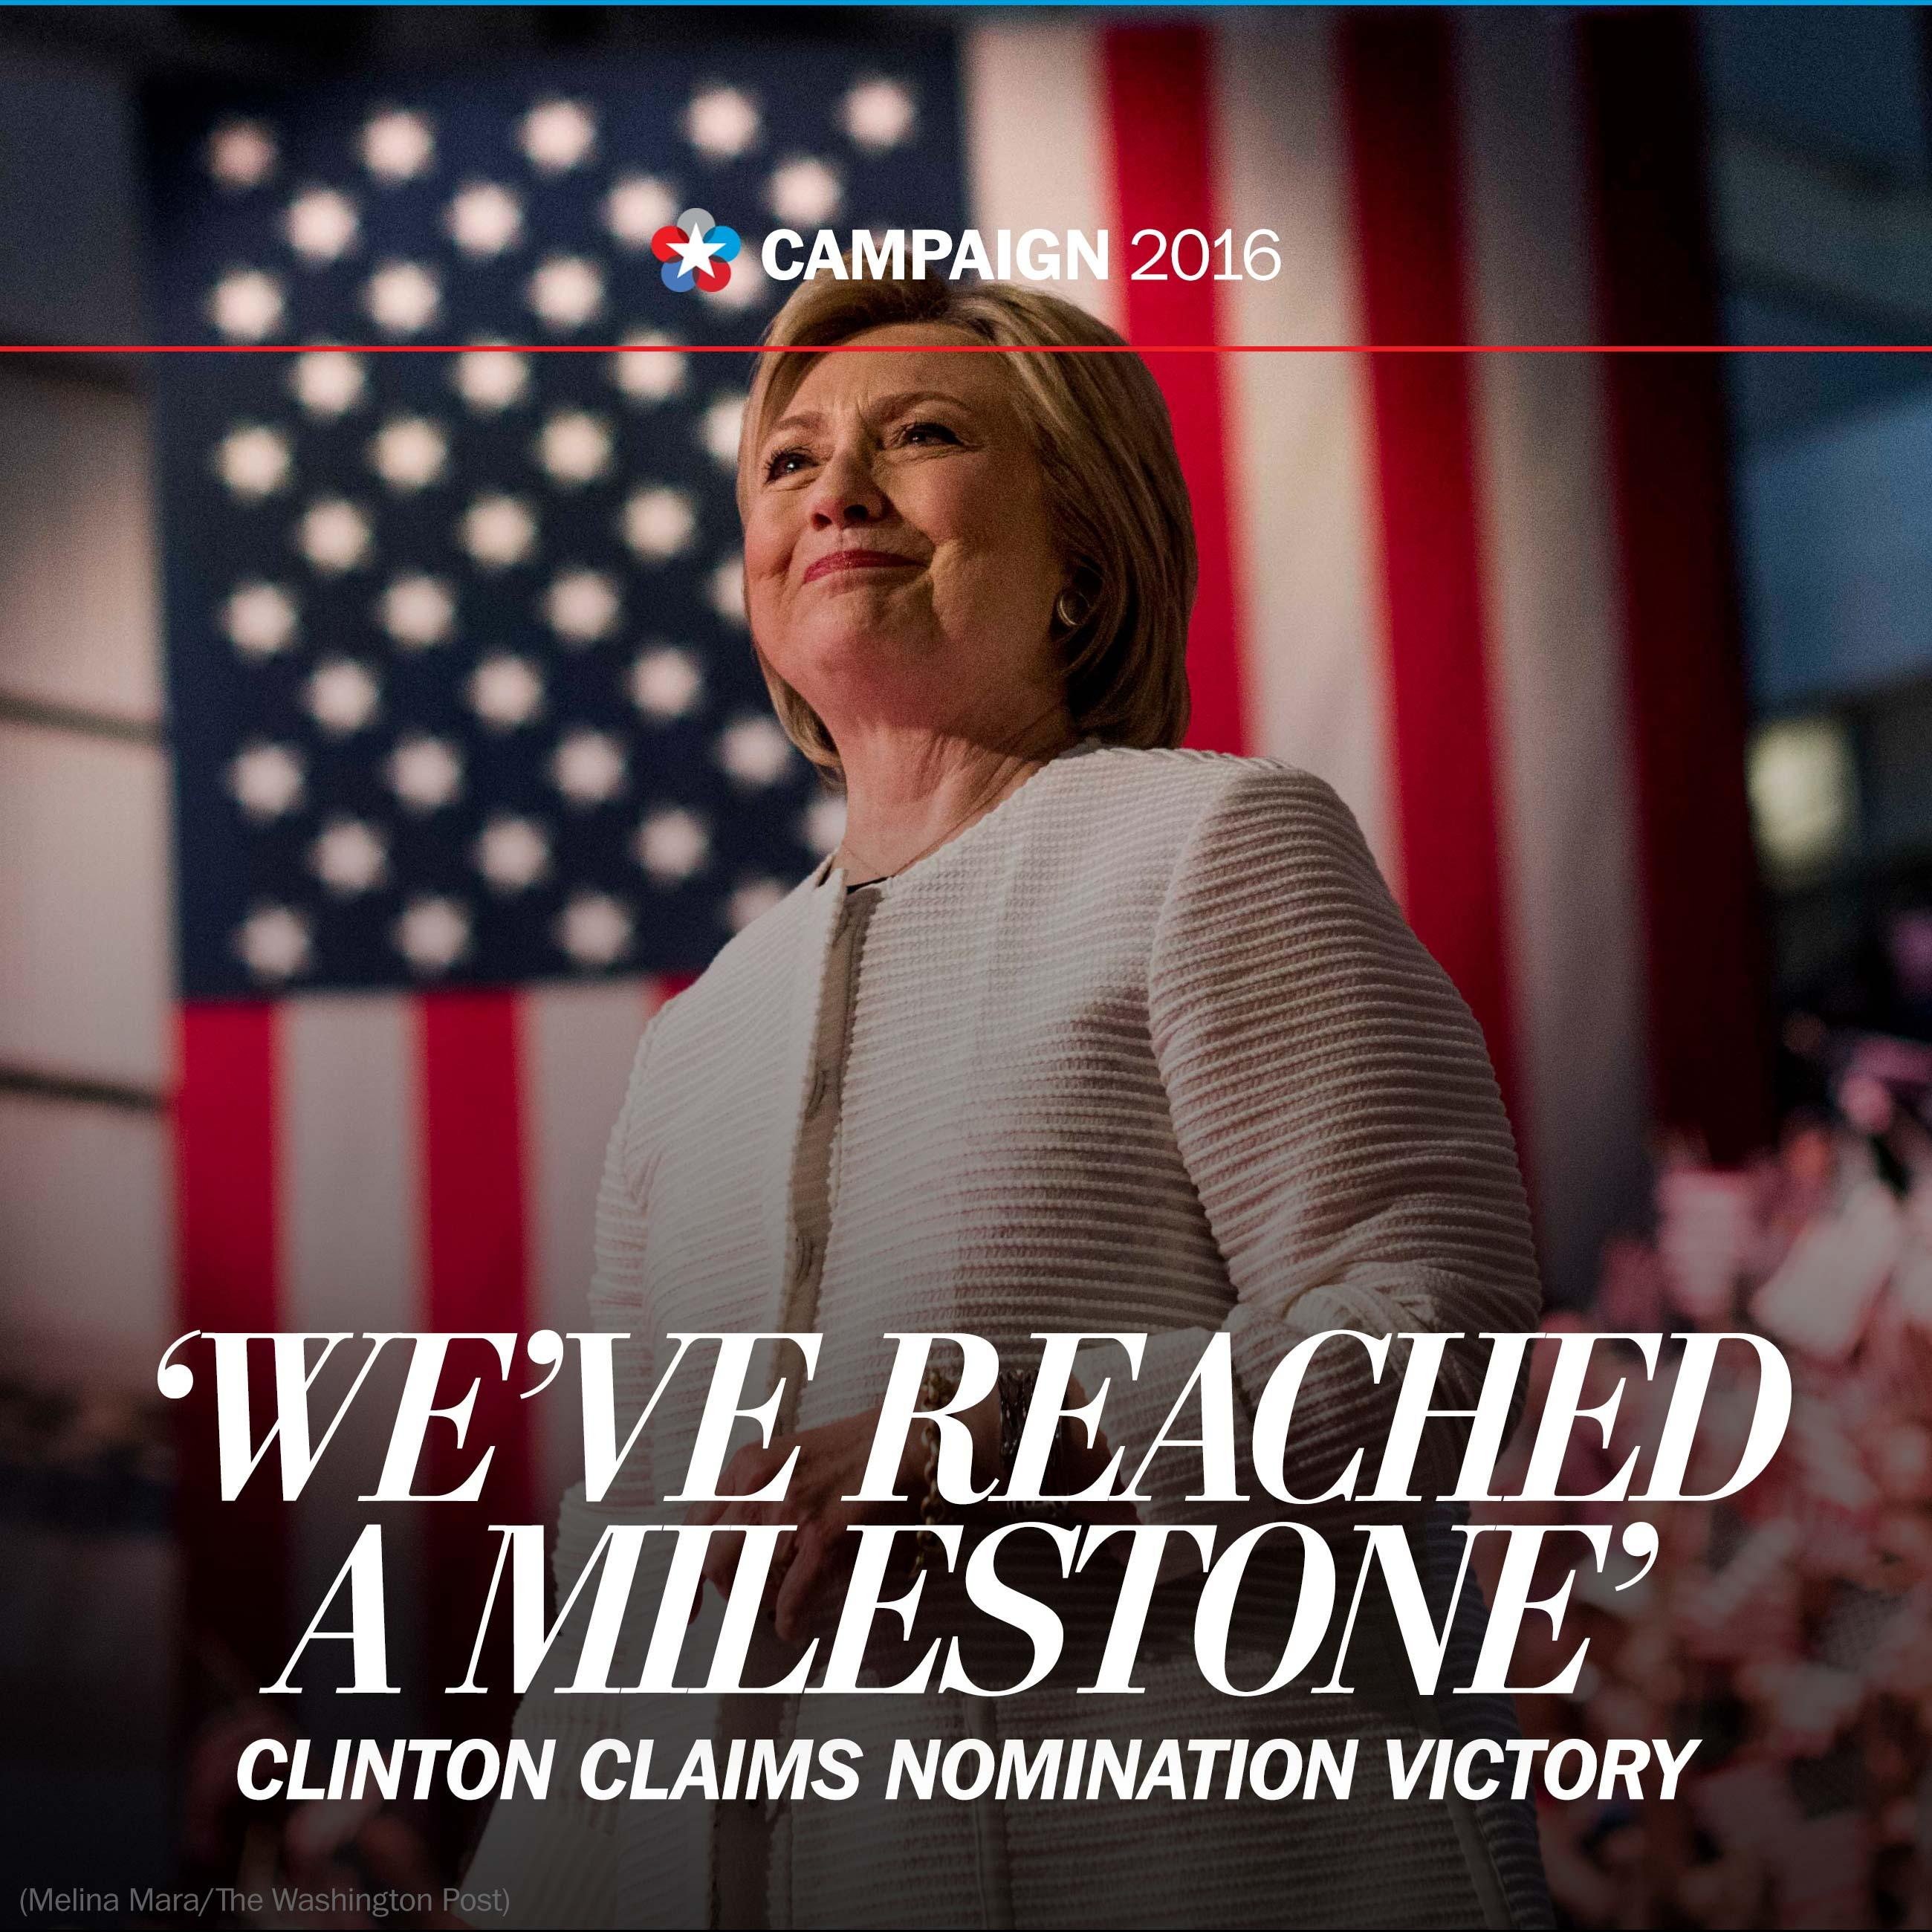 Clinton celebrates victory, declaring: 'We've reached a milestone'